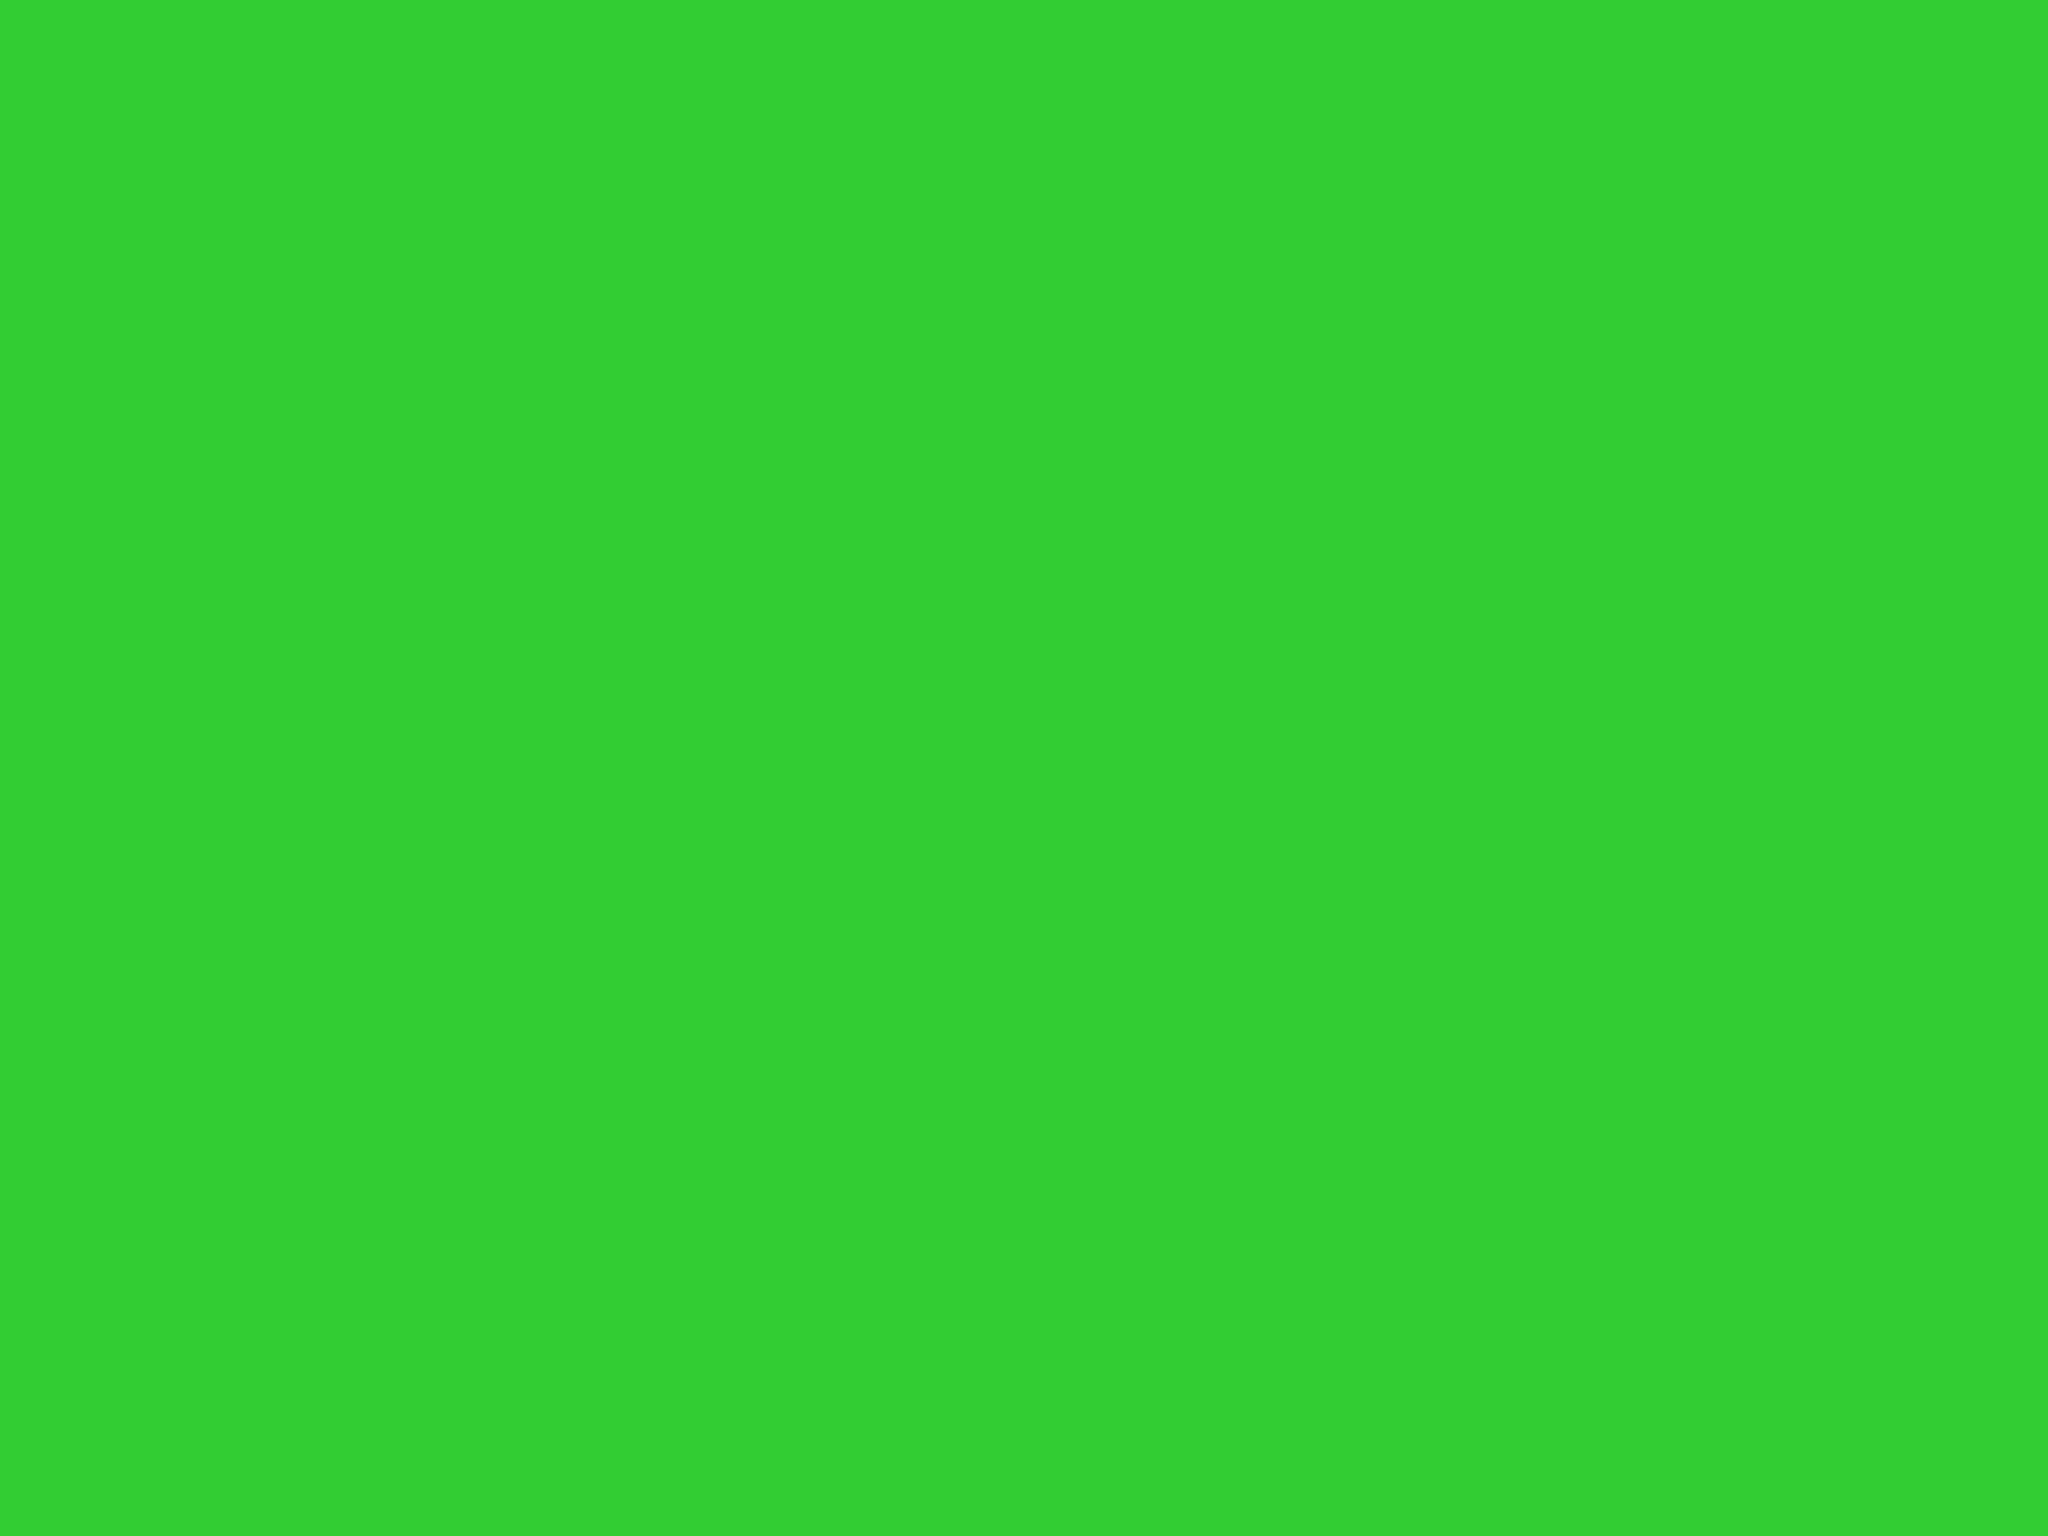 2048x1536 Lime Green Solid Color Background